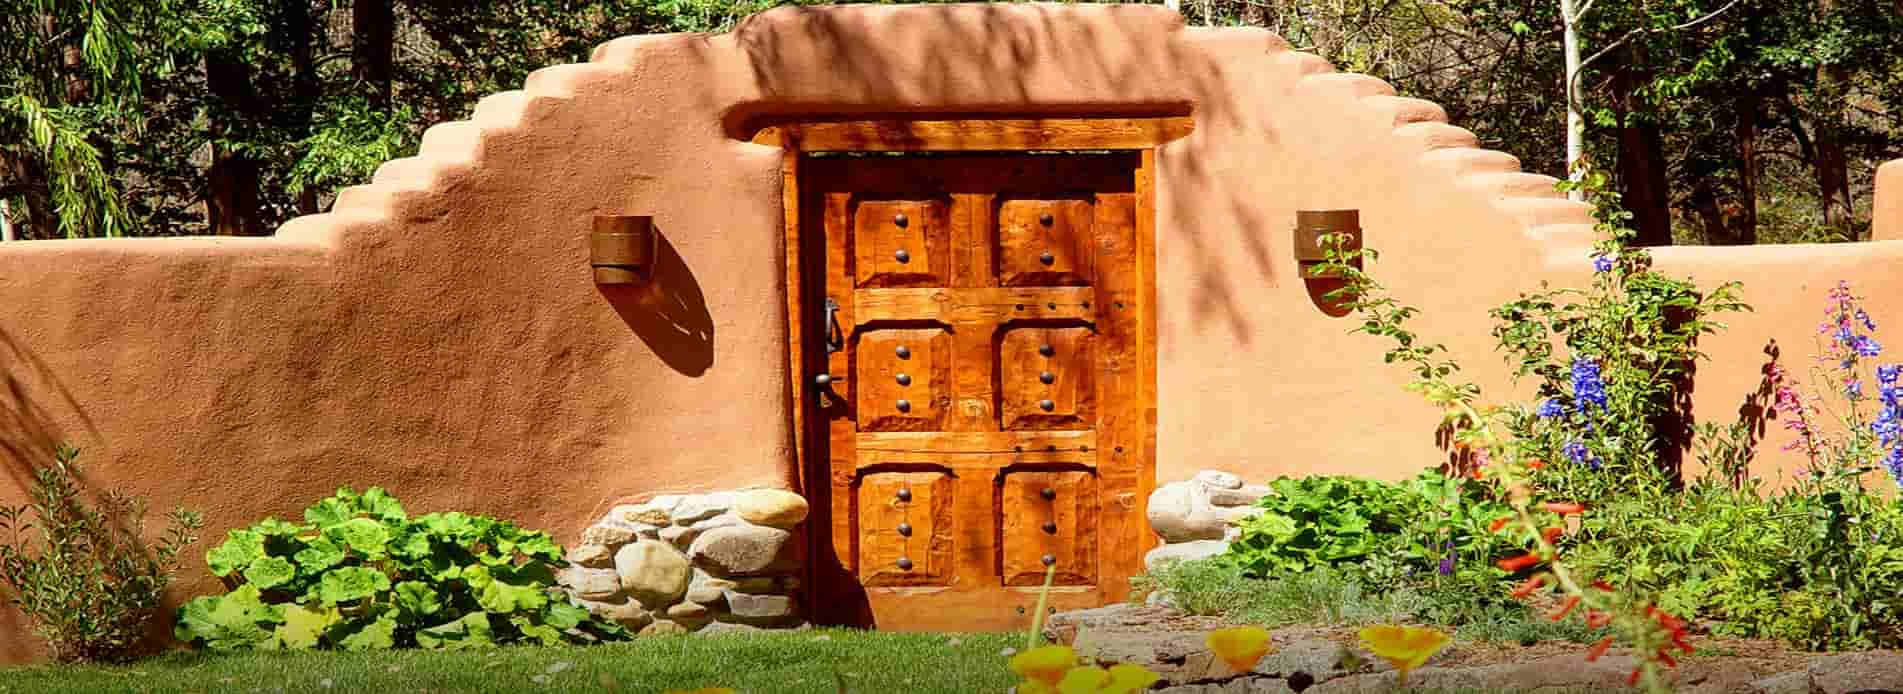 Taos_Hacienda_yard_door_1903x694-min-2-min